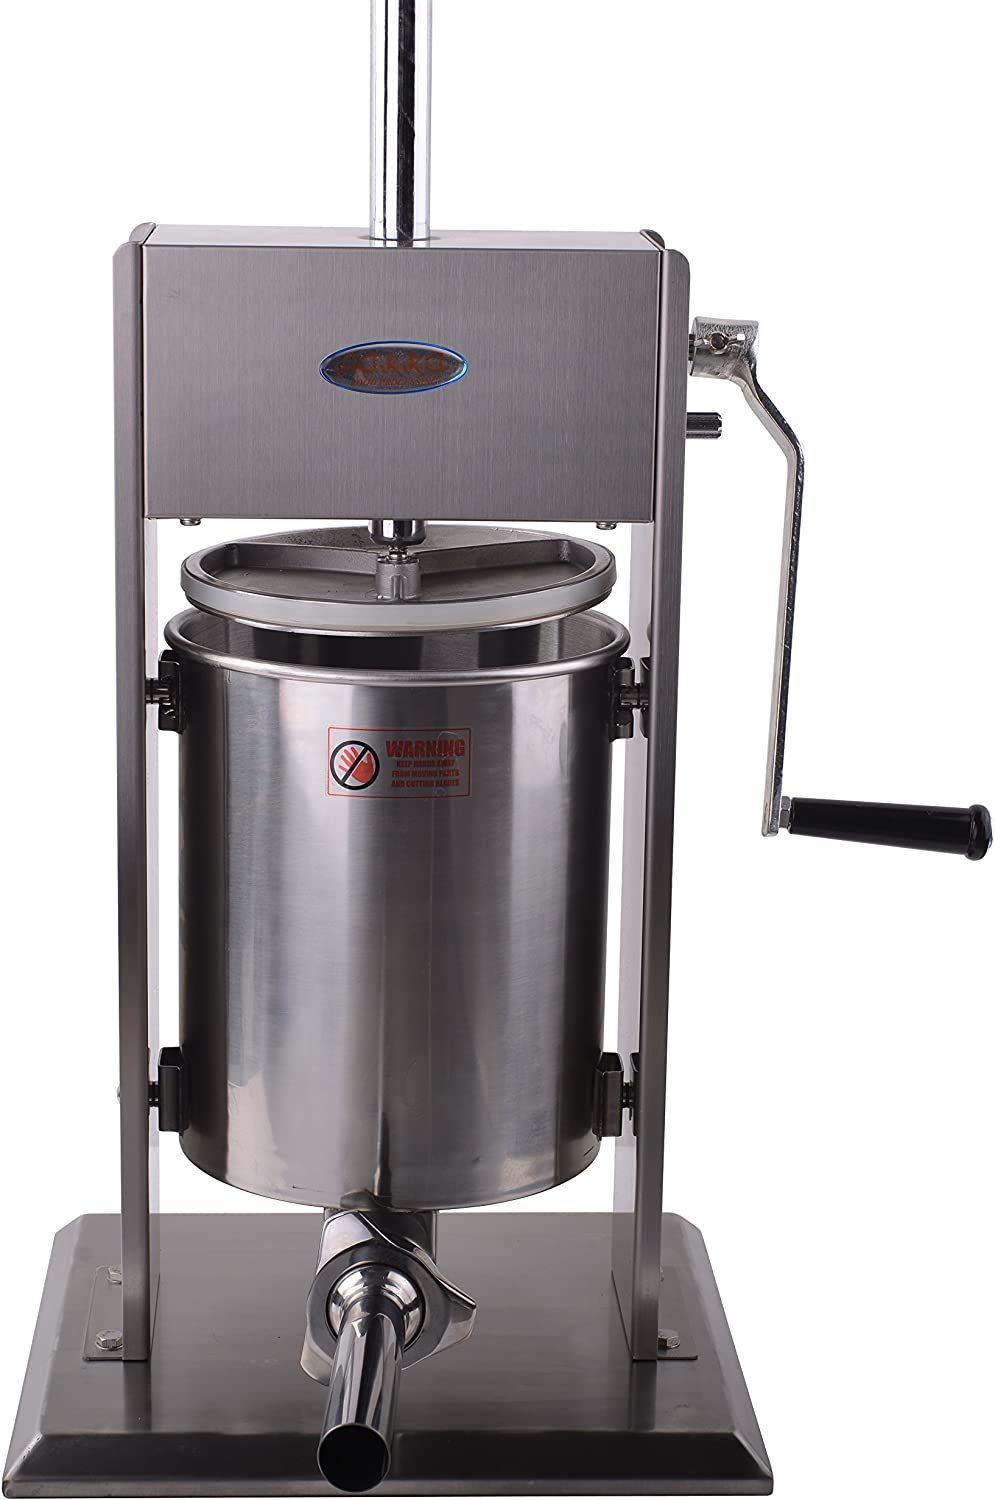 Hakka 22 Lb 10 L Sausage Stainless Vertica famous Speed Steel Stuffer 2 Selling and selling